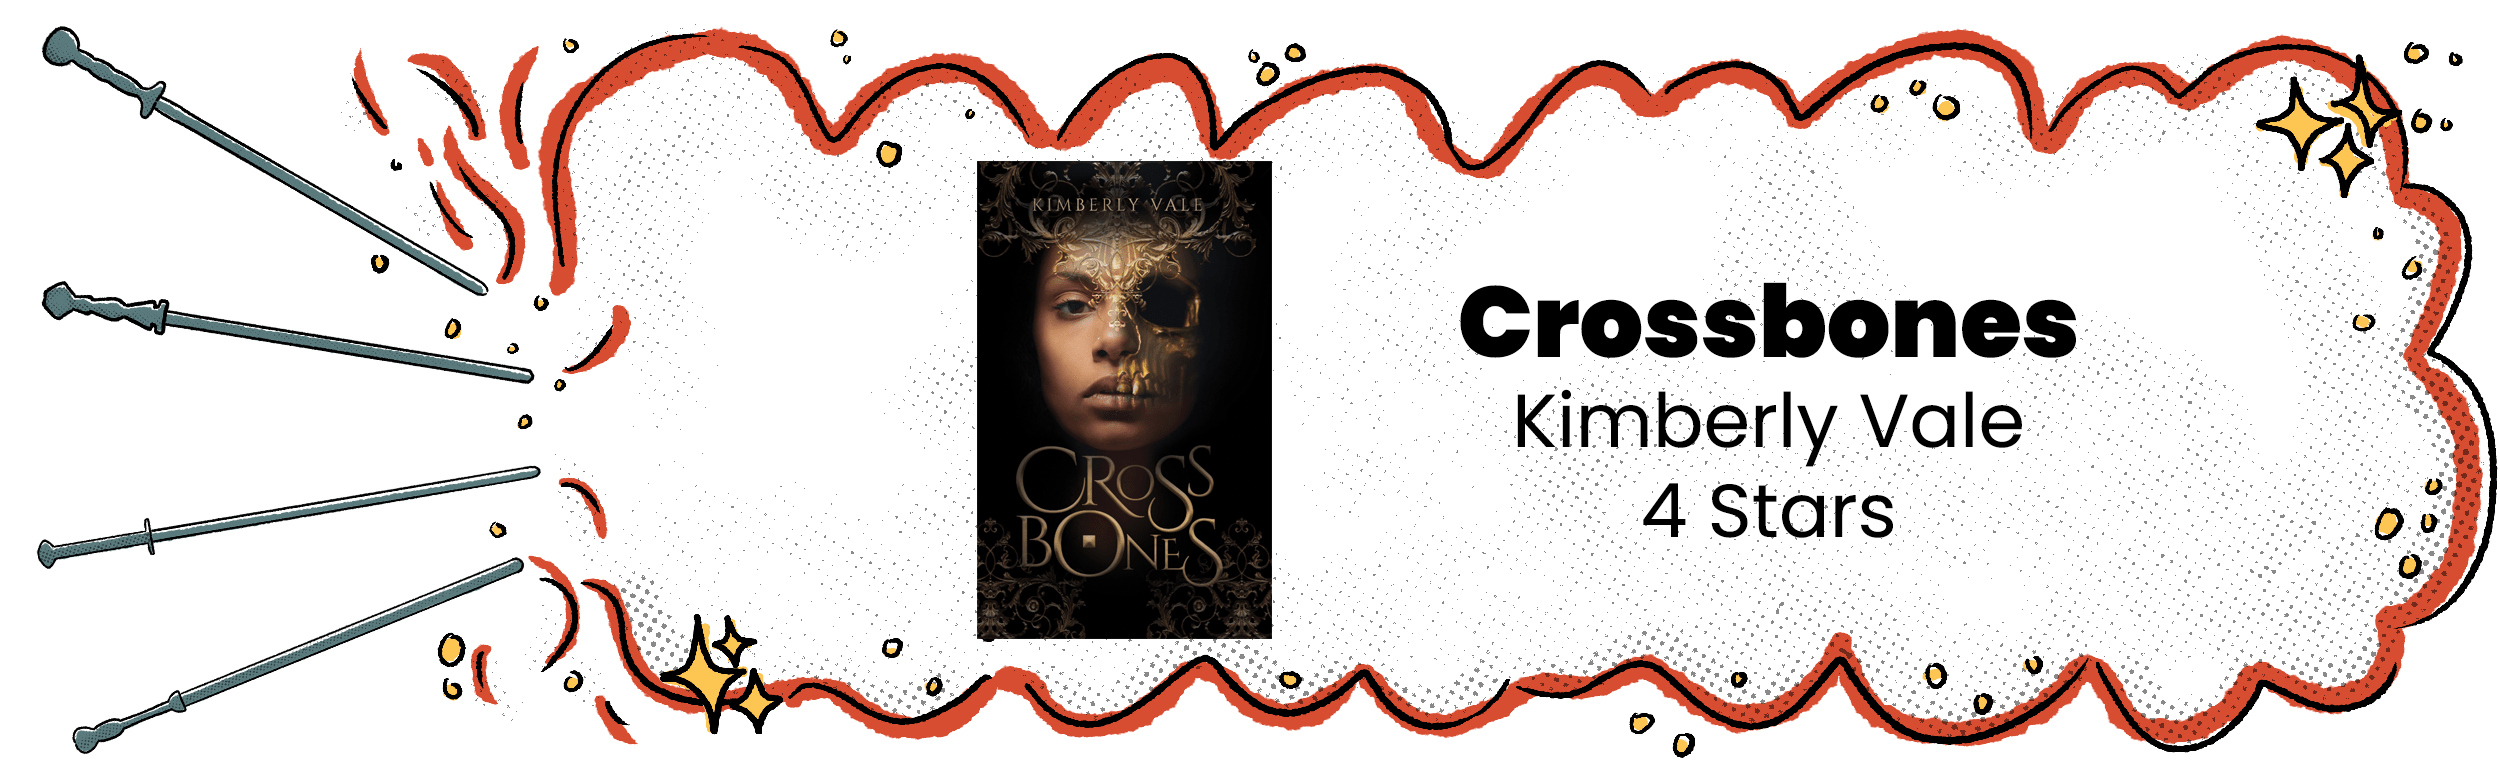 Crossbones Review Banner with 4 Star Rating